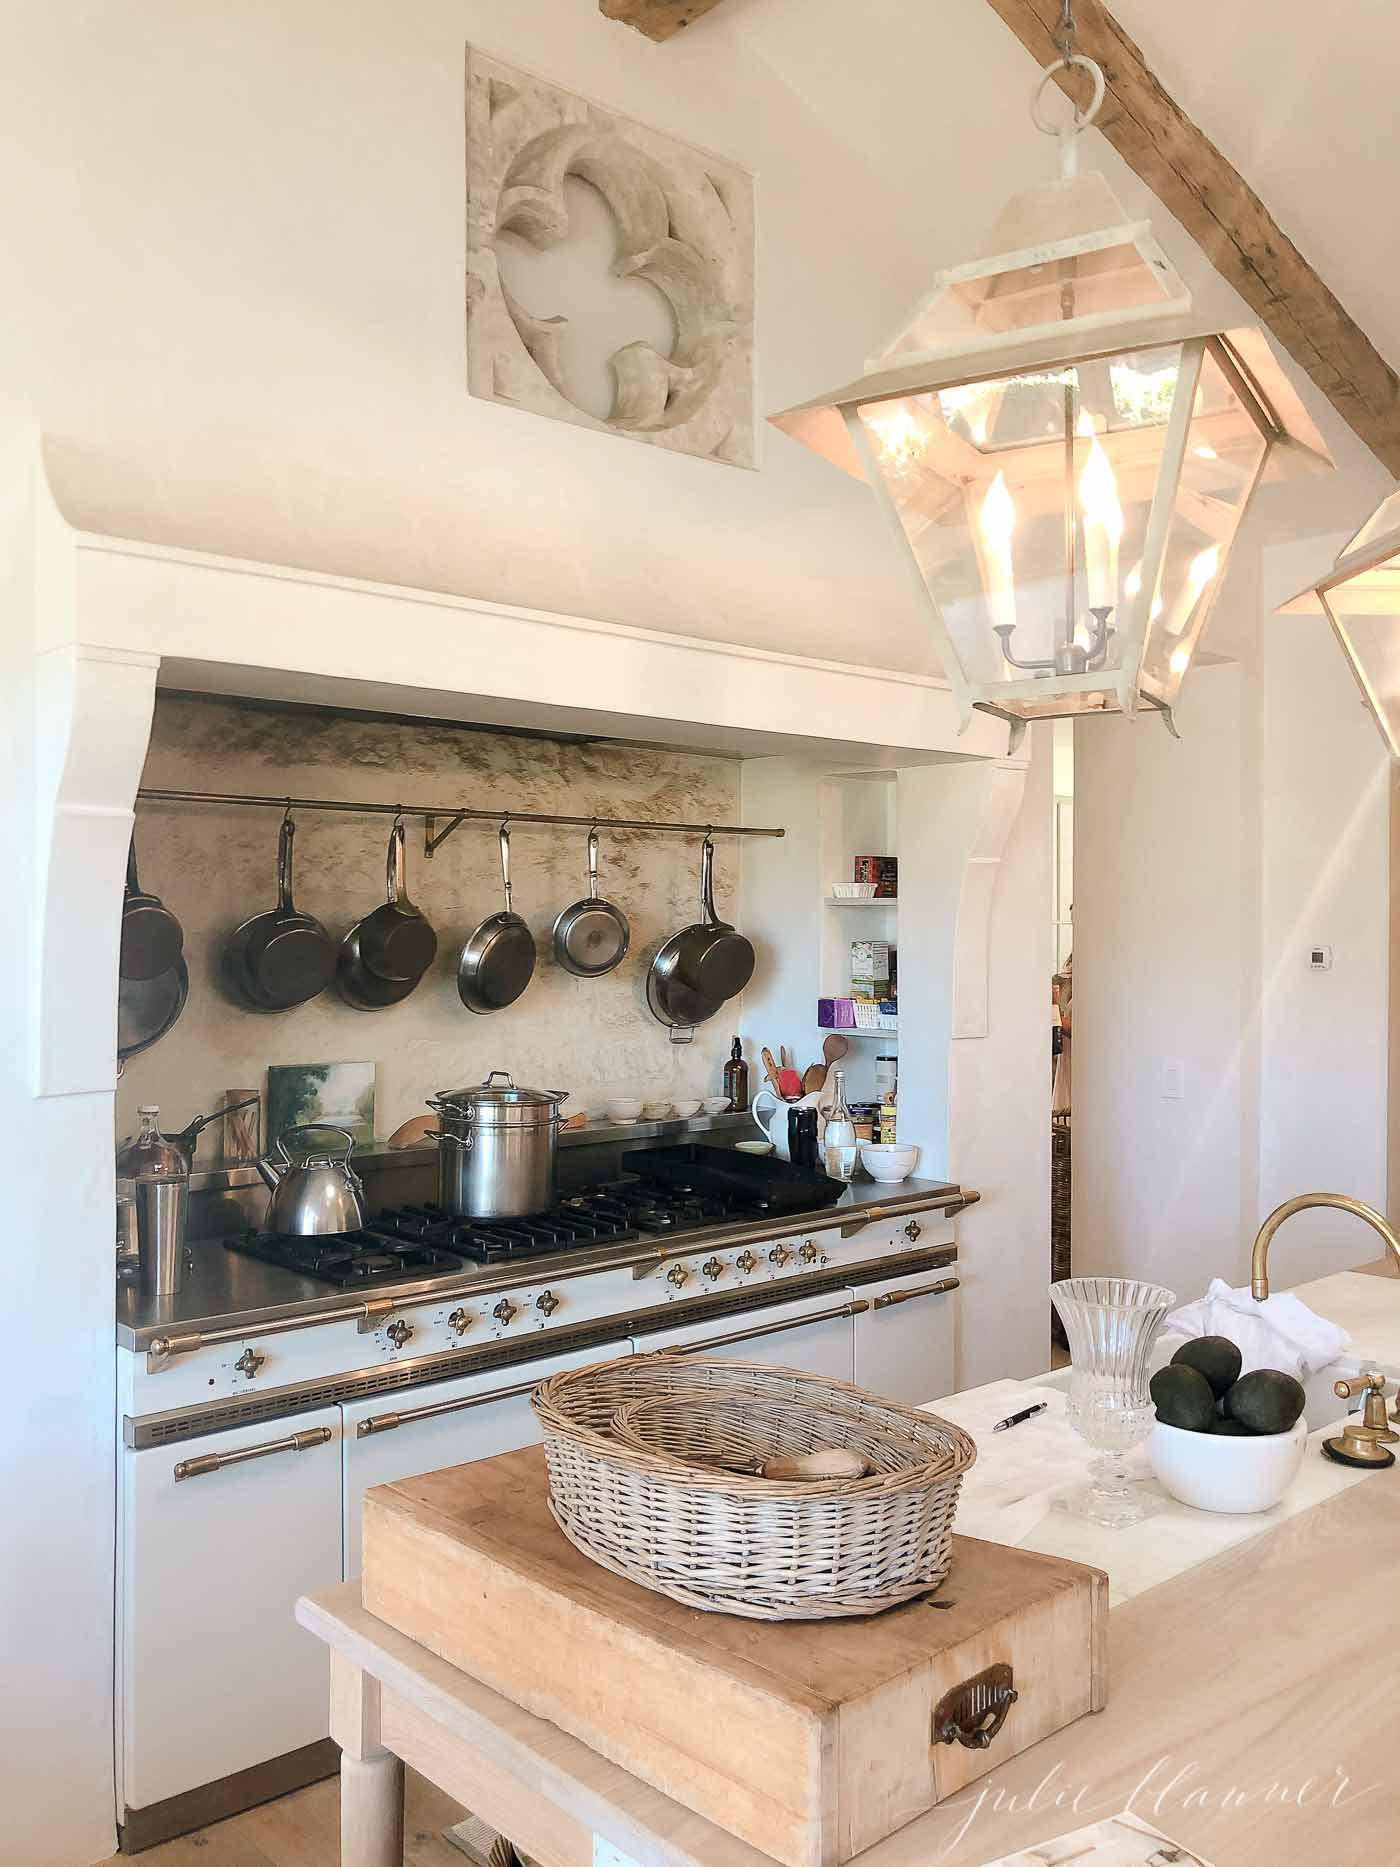 Utilitarian French kitchen with Lacanche range and collection of pots hanging above.